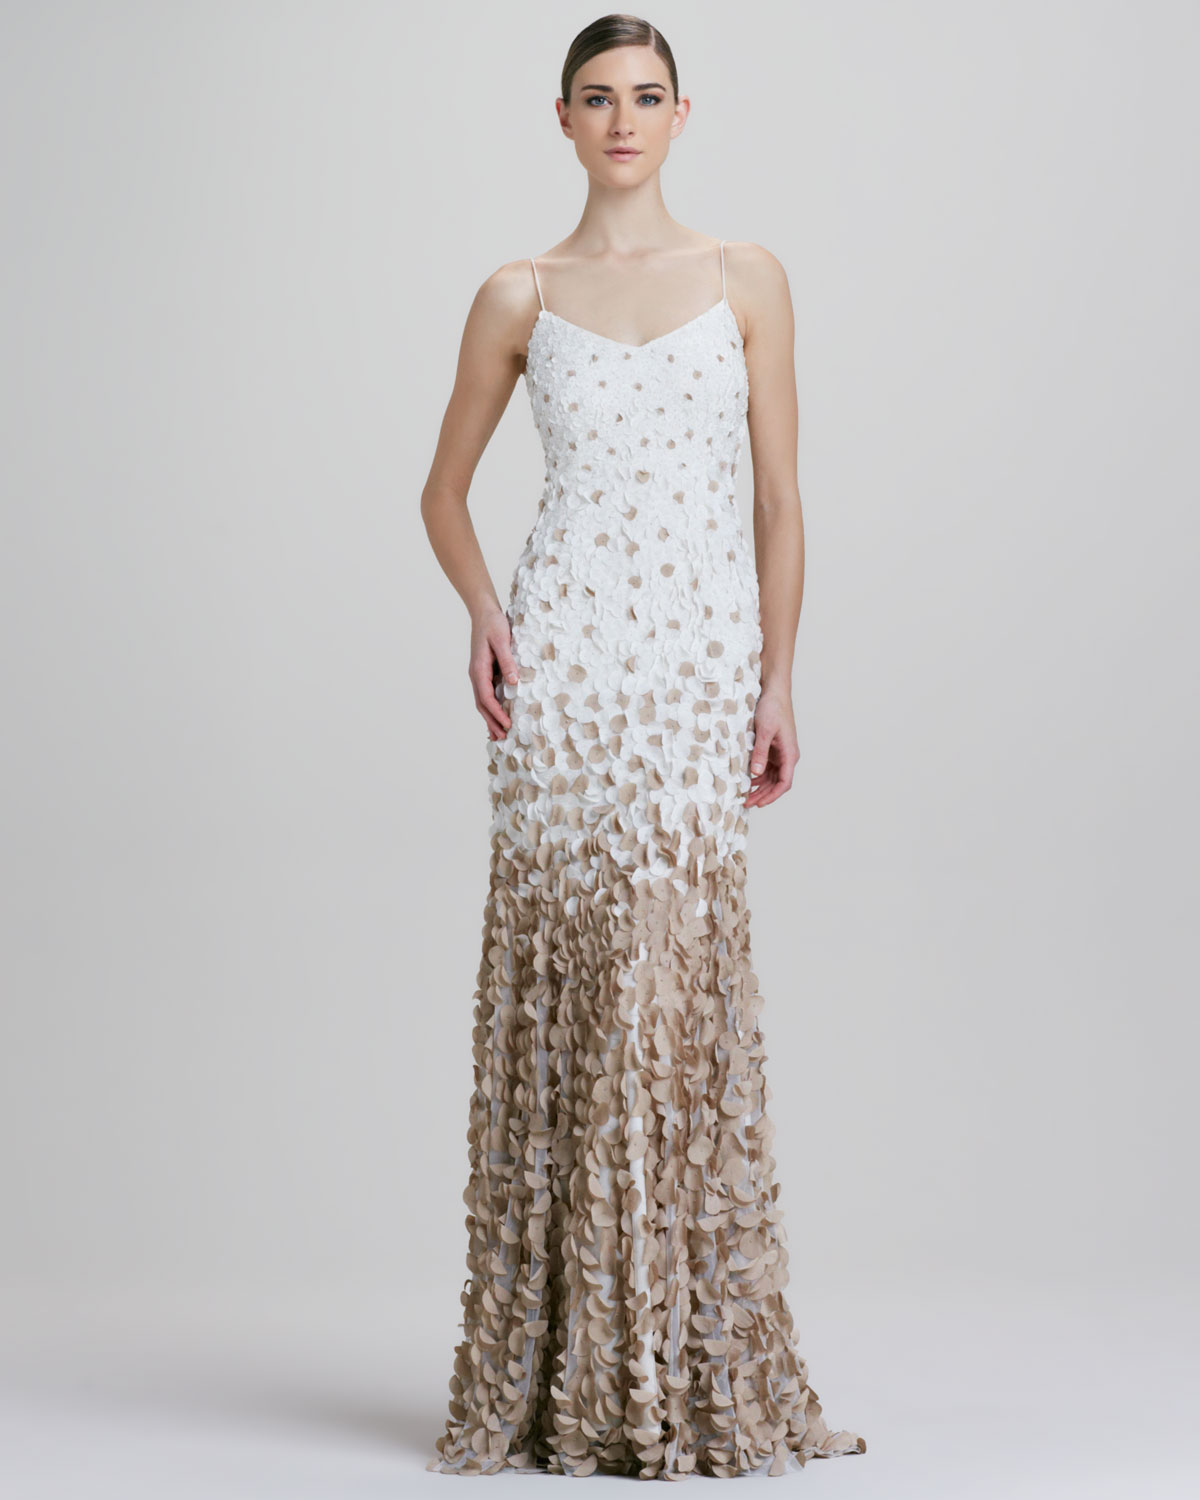 Lyst - Theia Ombre Petal Slip Gown in White